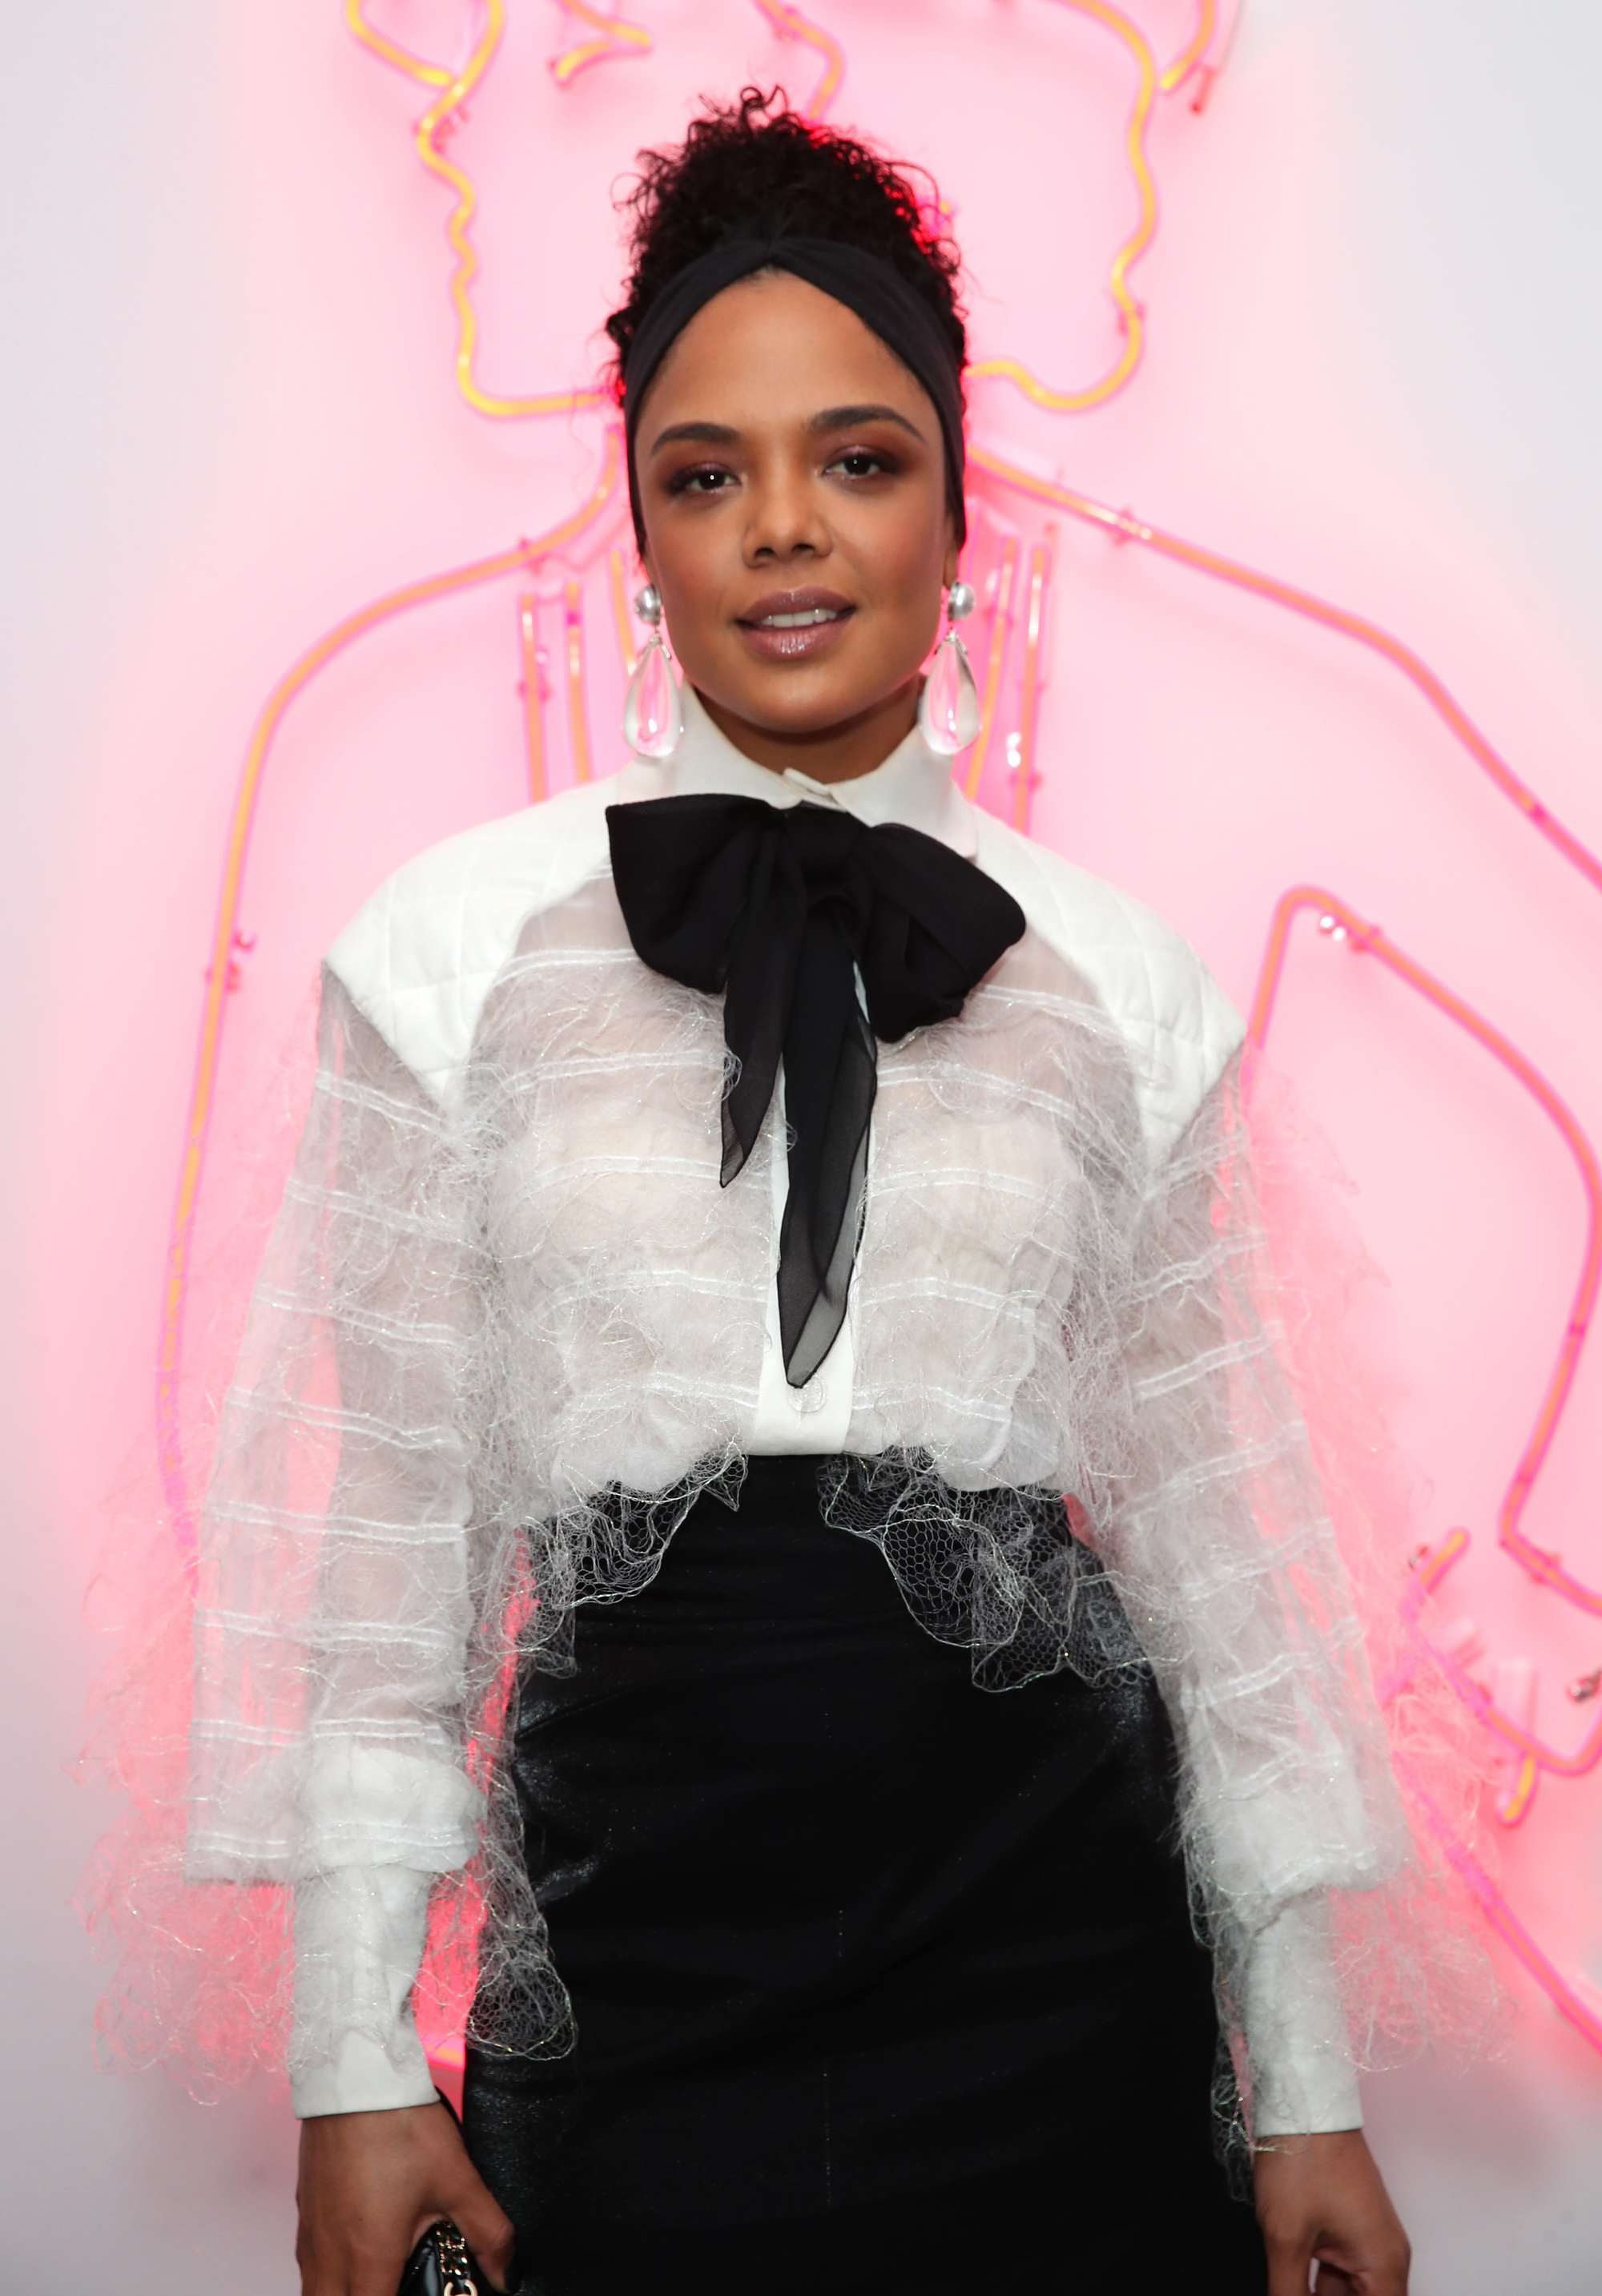 tessa thompson dark brown hair in updo with thick black headband wearing white shirt and big bow tie